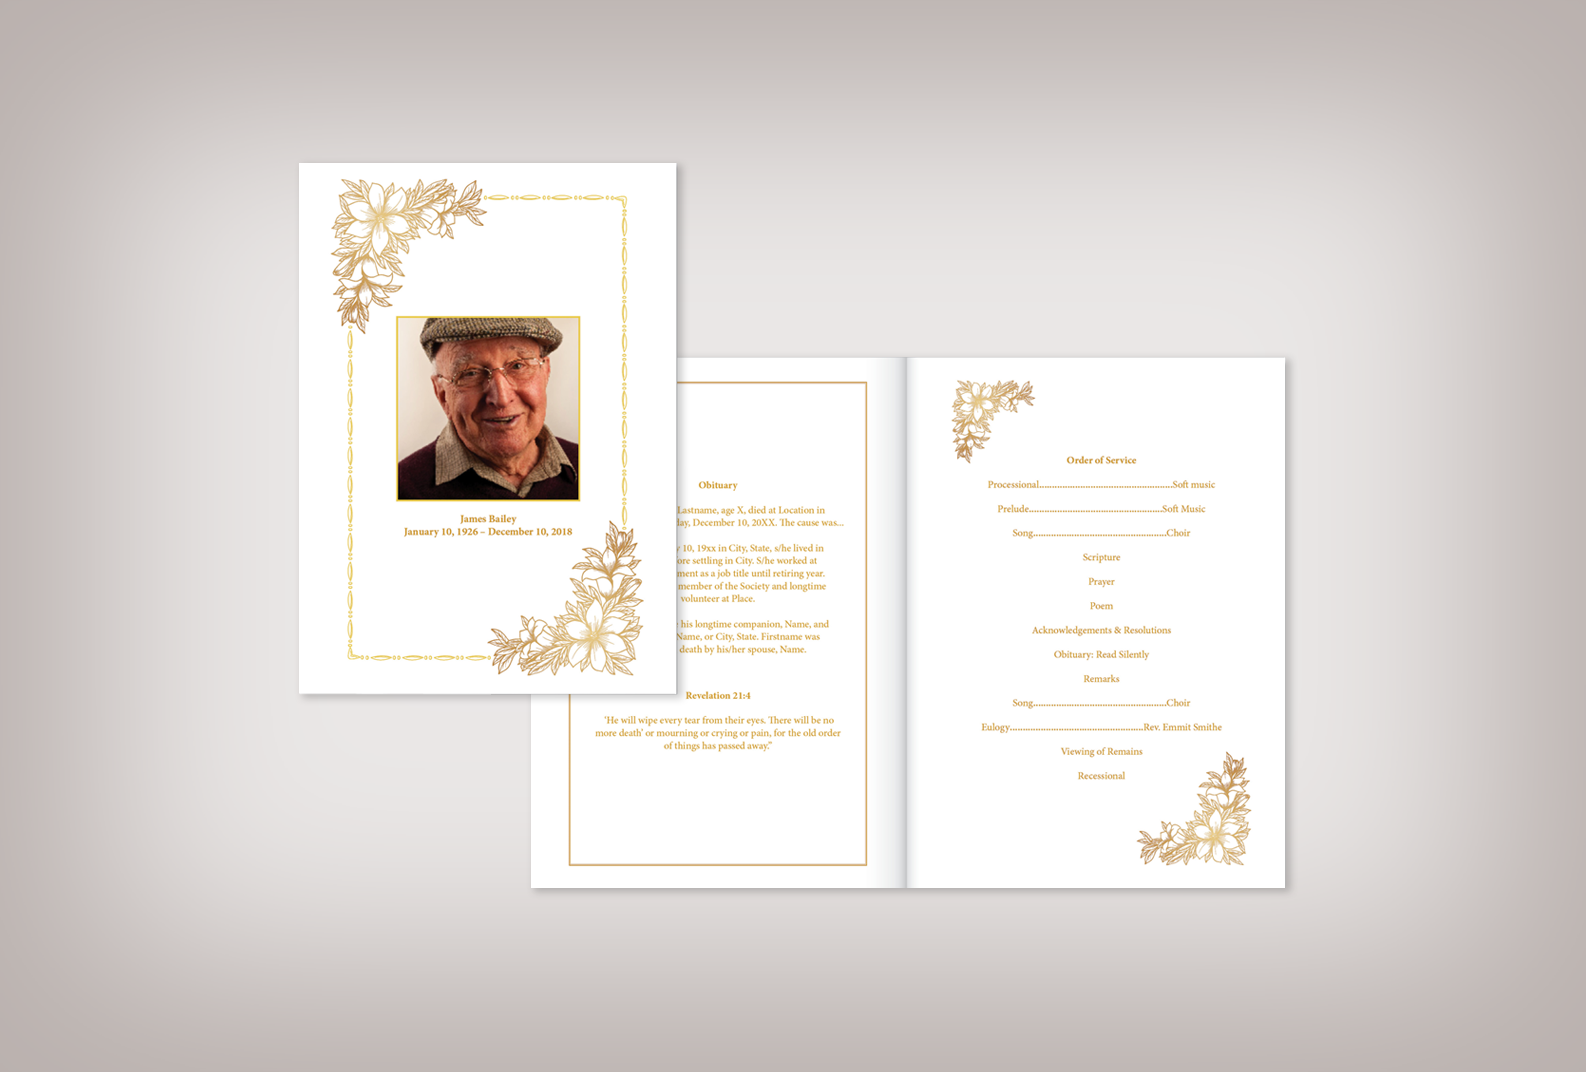 Need a Funeral Program? - Download editable funeral program designs that can be customized with your own text and photos.Choose a design